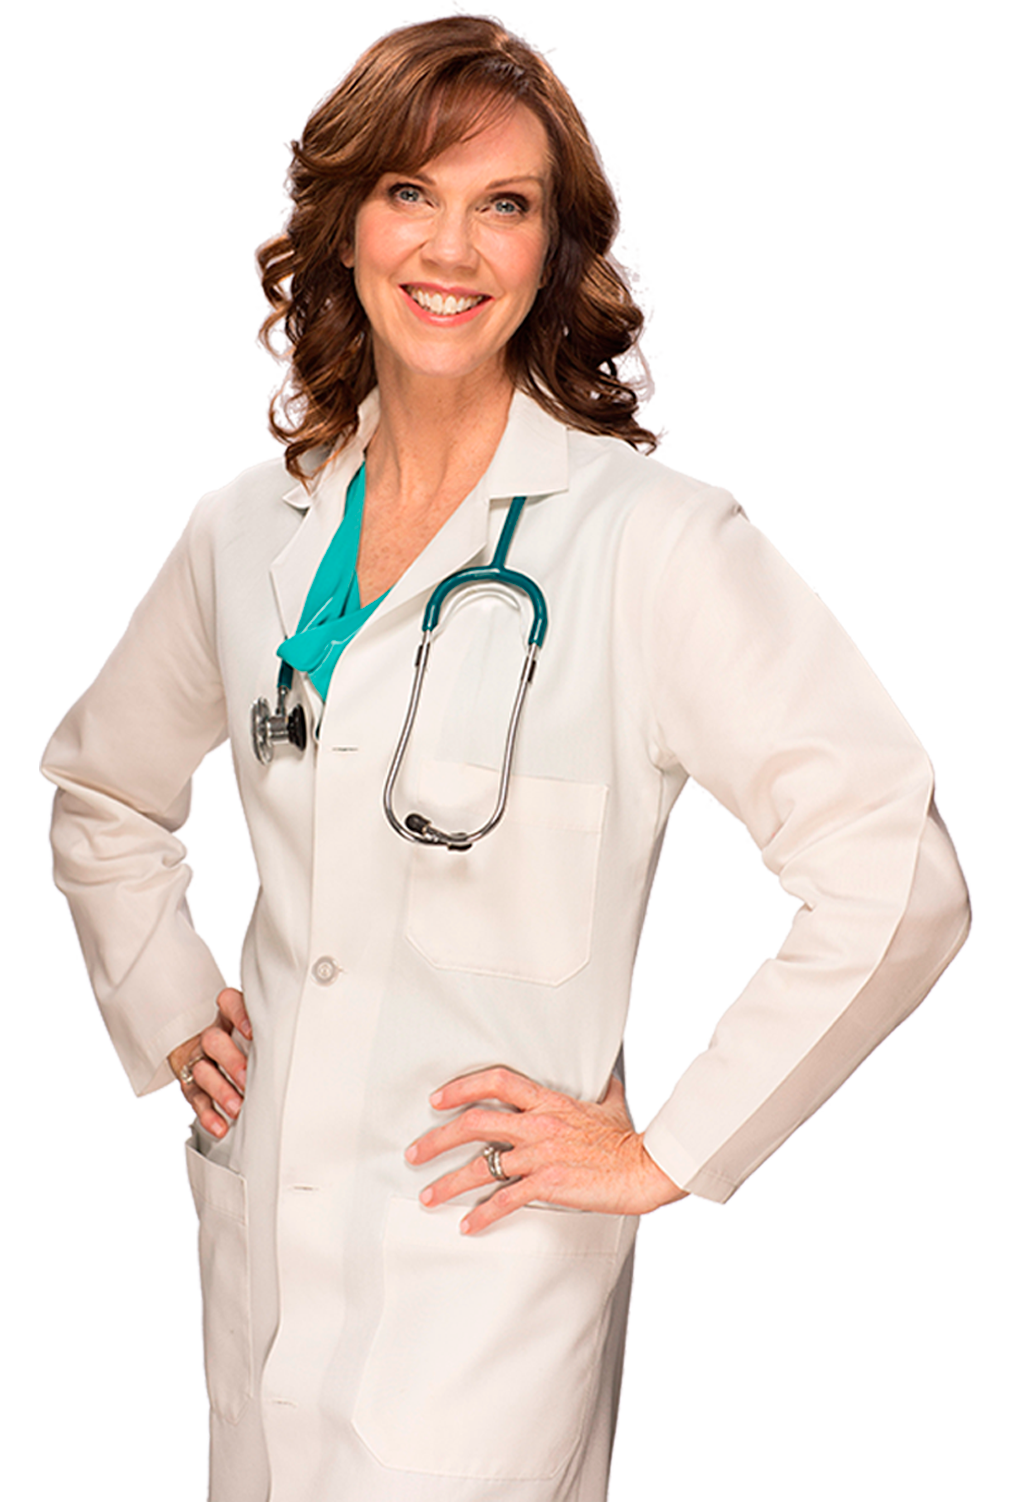 Doctor Tami